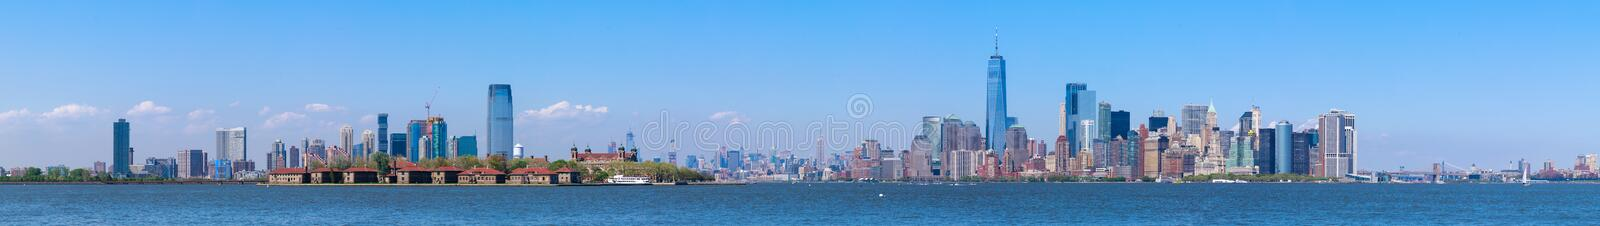 Lower Manhattan skyscrapers and One World Trade Center. New York City stock image